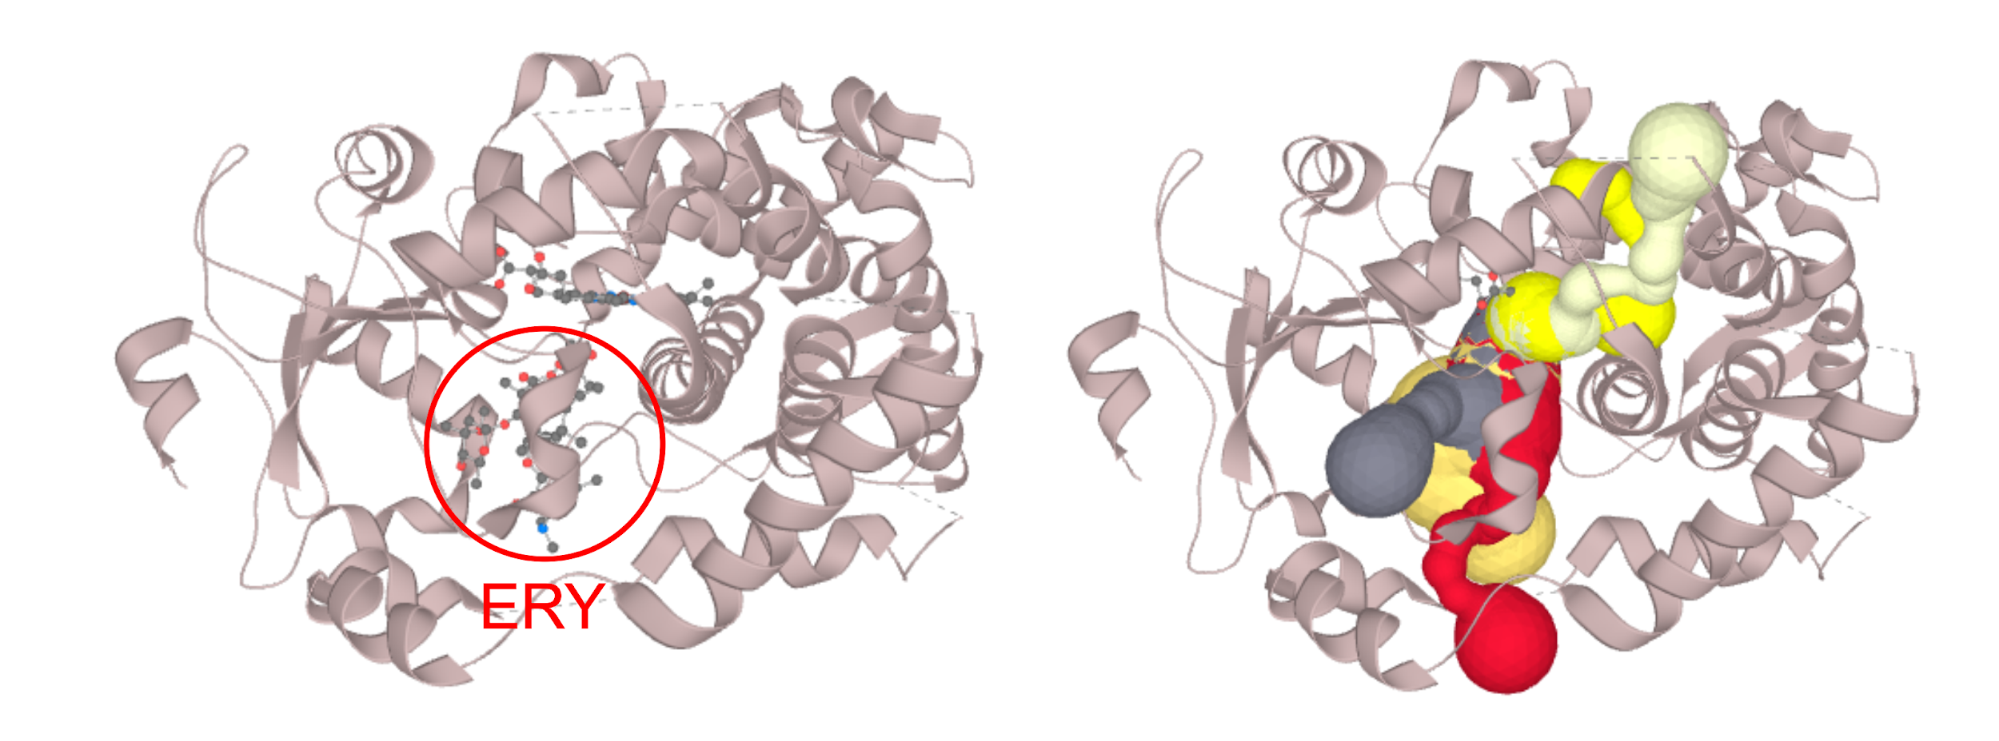 Structure of CYP3A4 with bound erythromycin (PDB ID: 2J0D; left) which is blocking the opening of the access channels. Discarding of the erythromycin molecule allows the proper calculation of access channels (right).